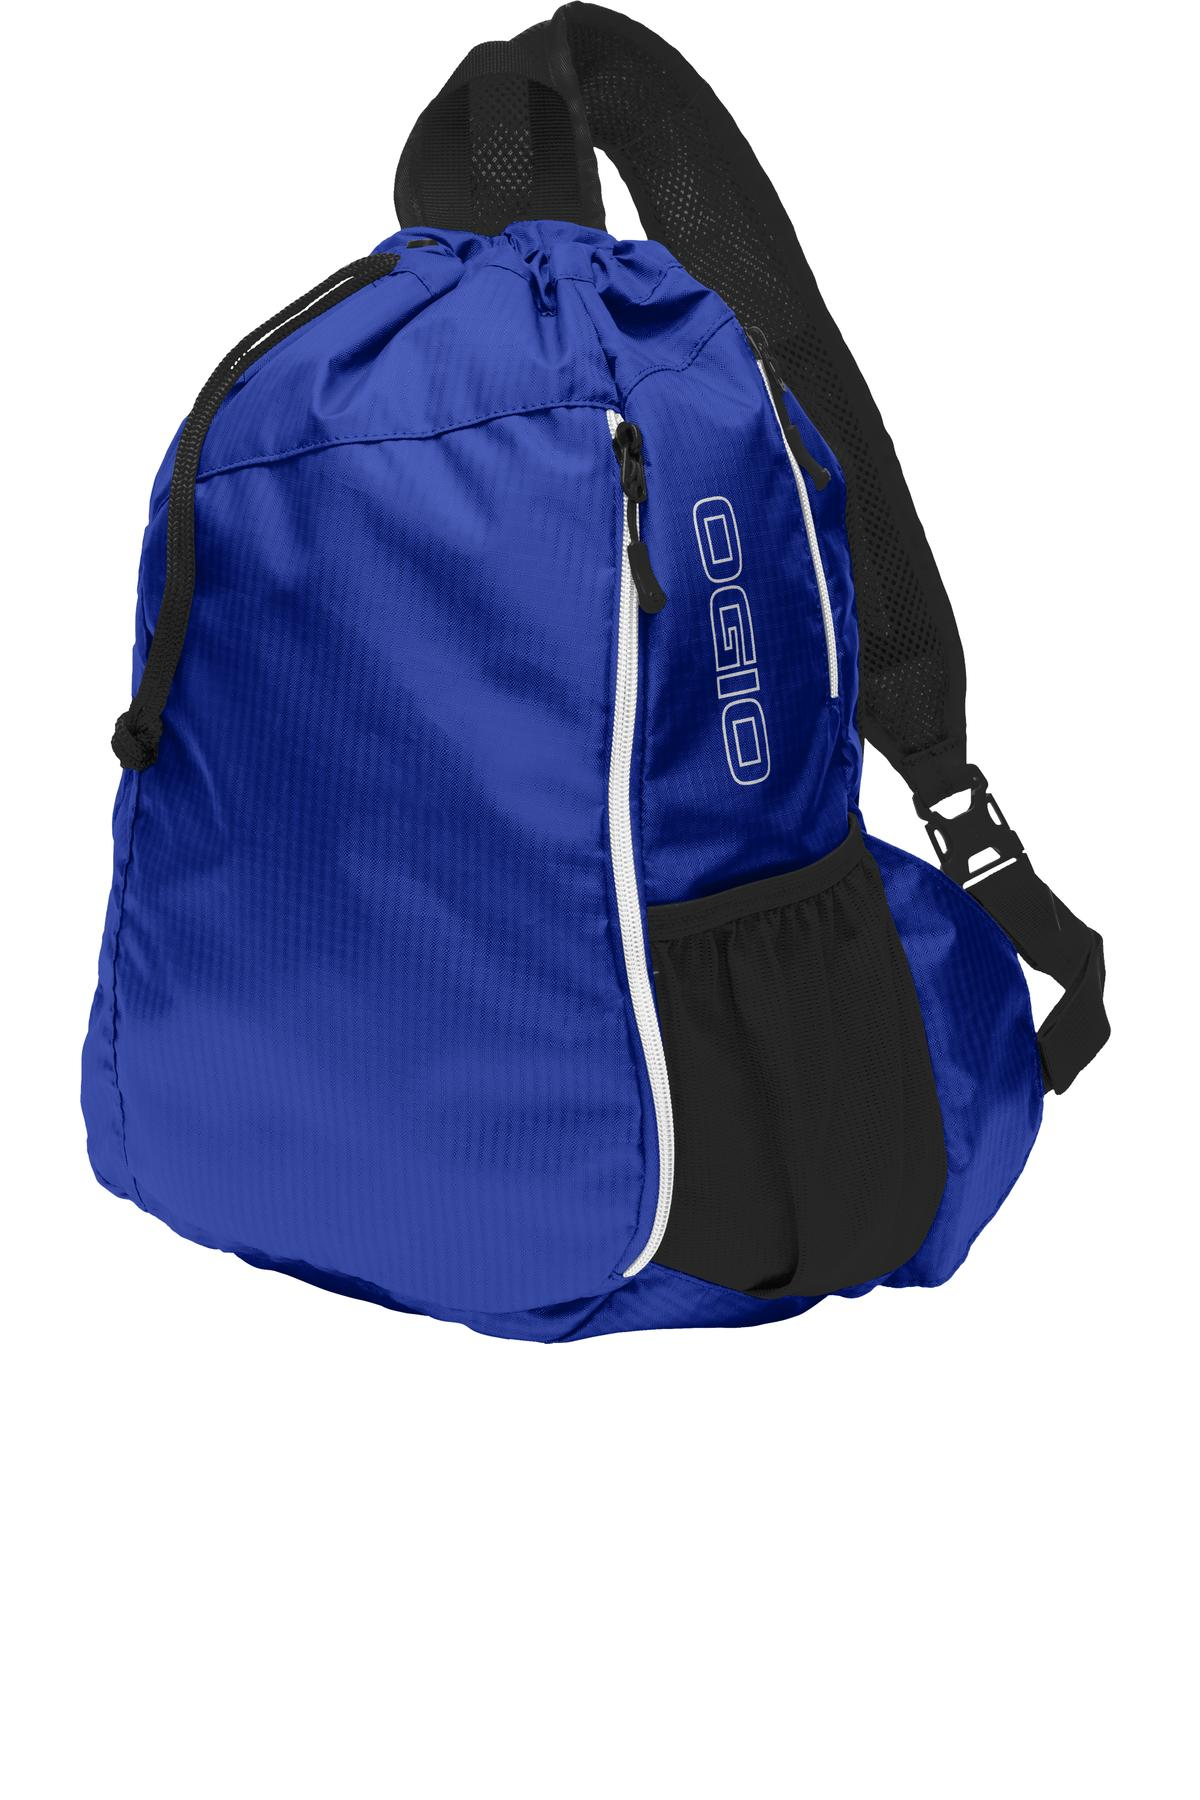 click to view Cobalt Blue/ Black